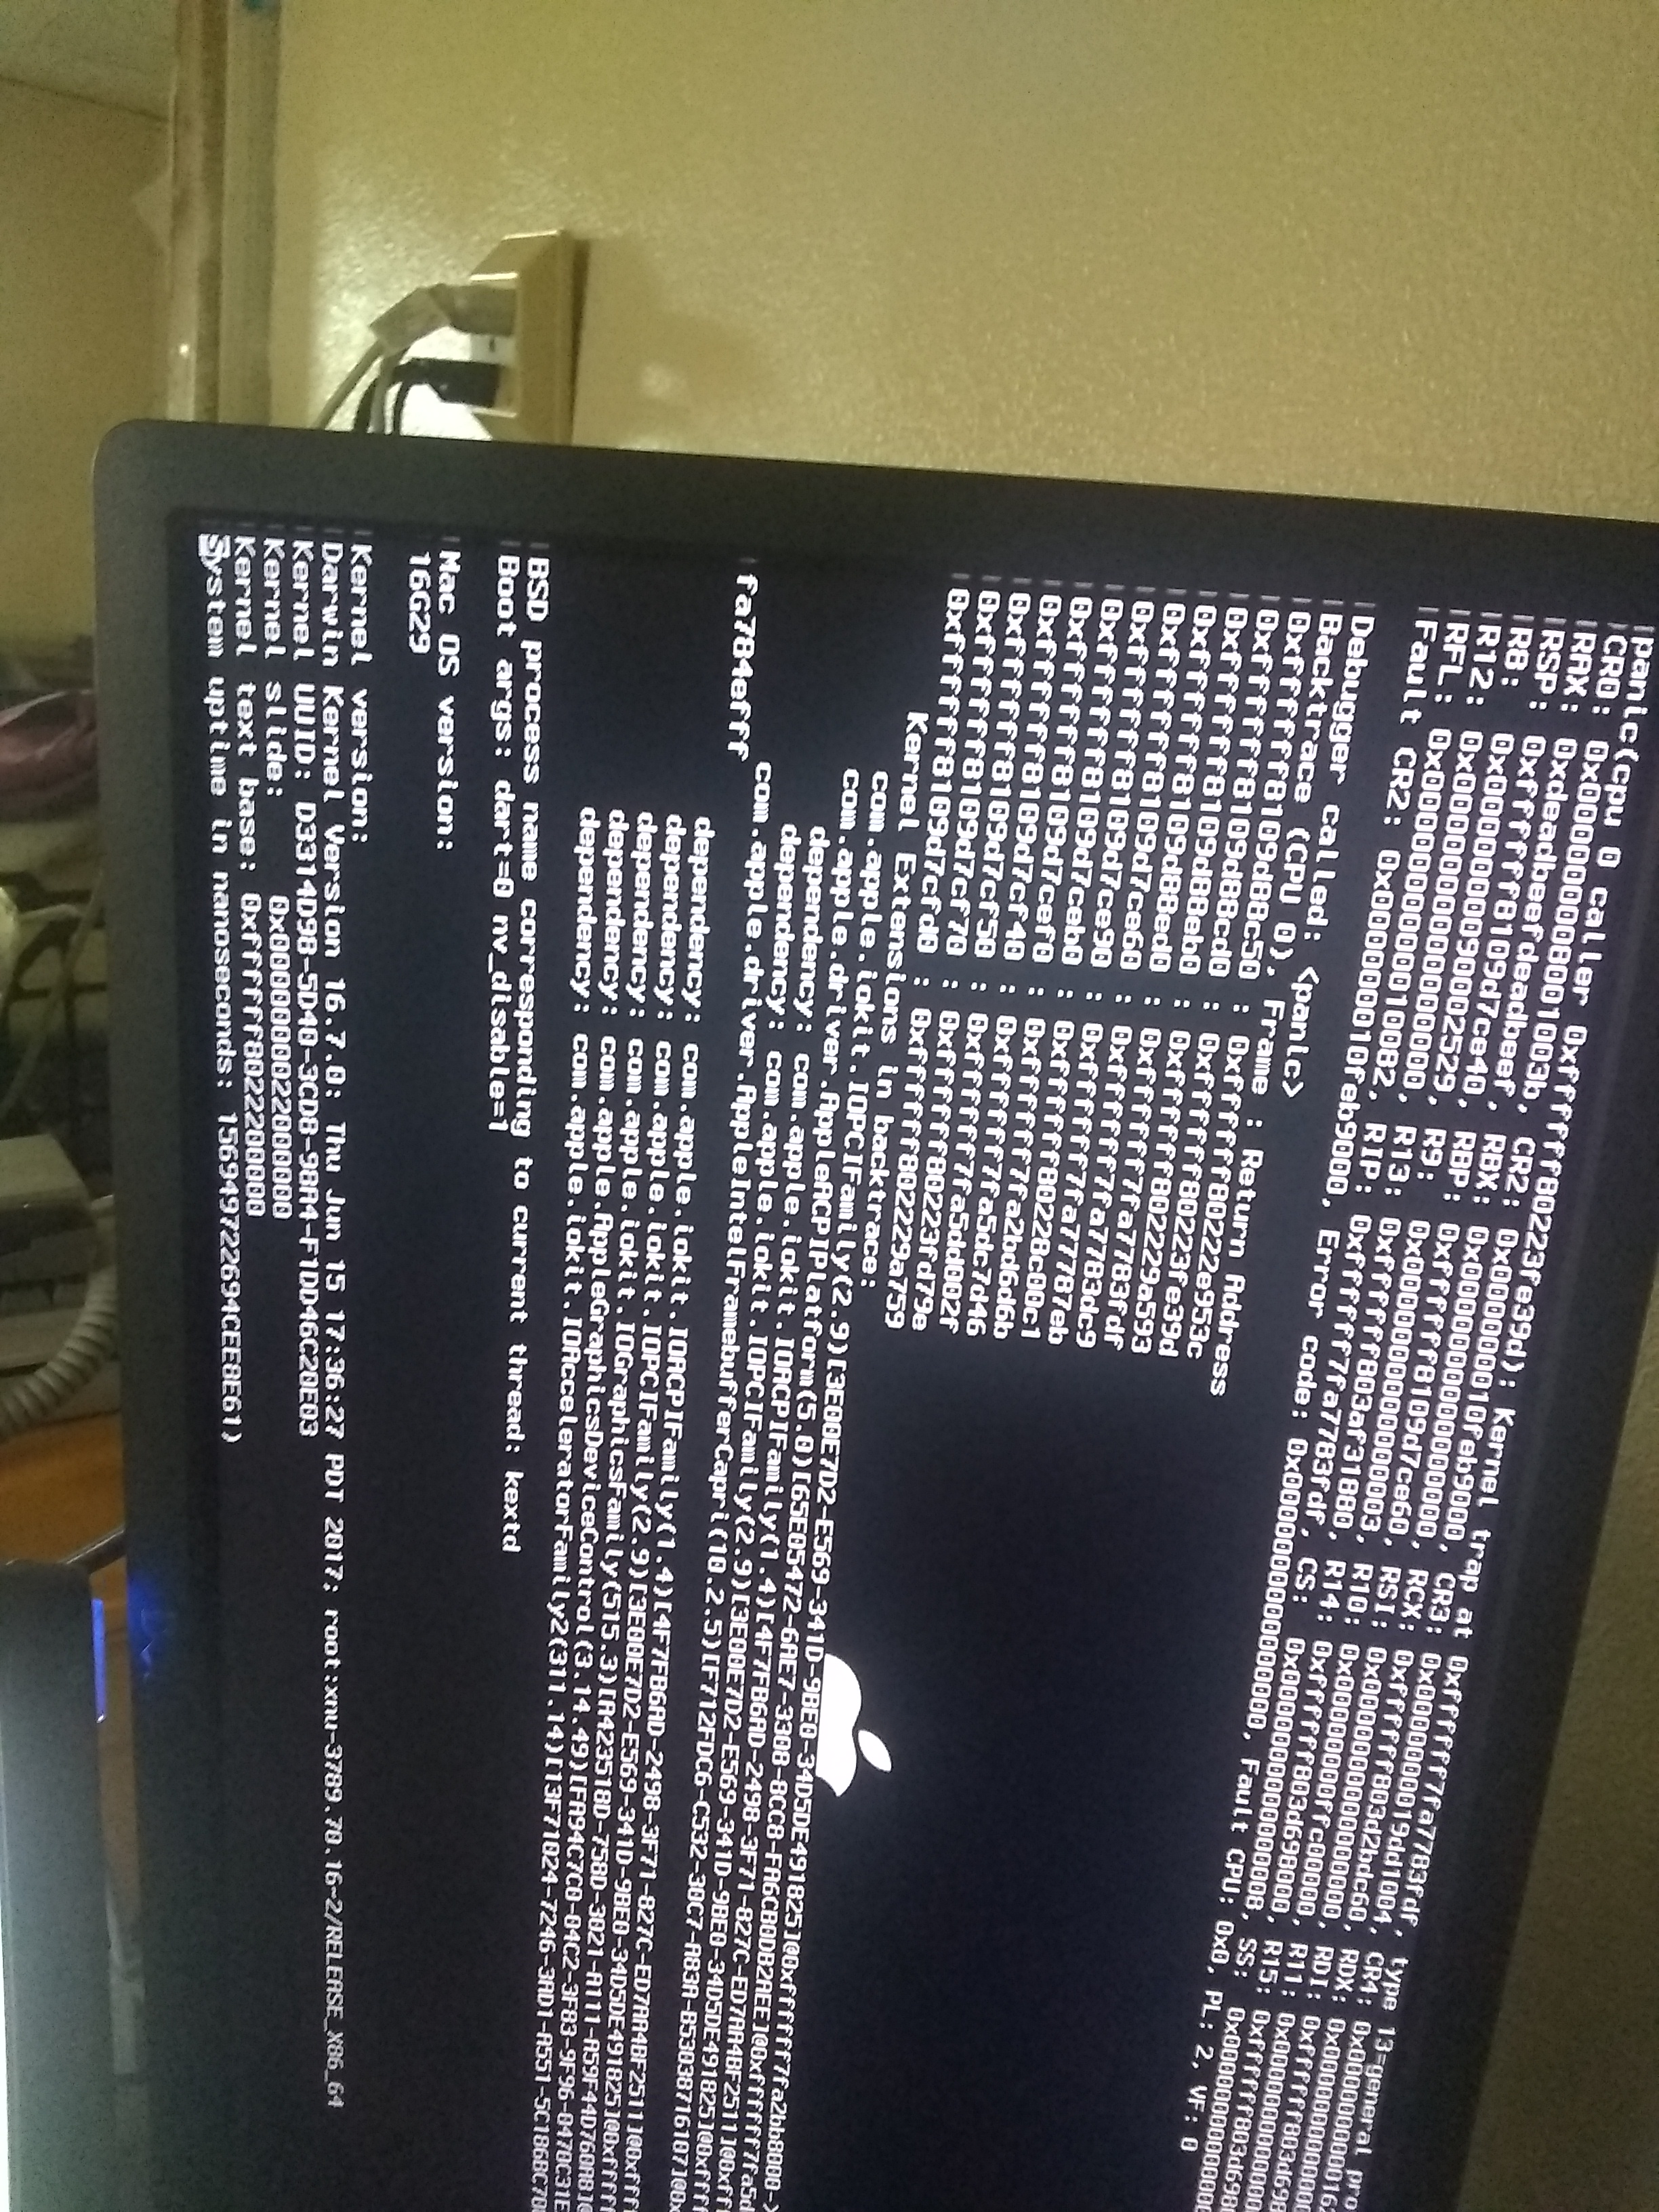 Power Mac G4 MDD - Kernel Panic after boot from USB